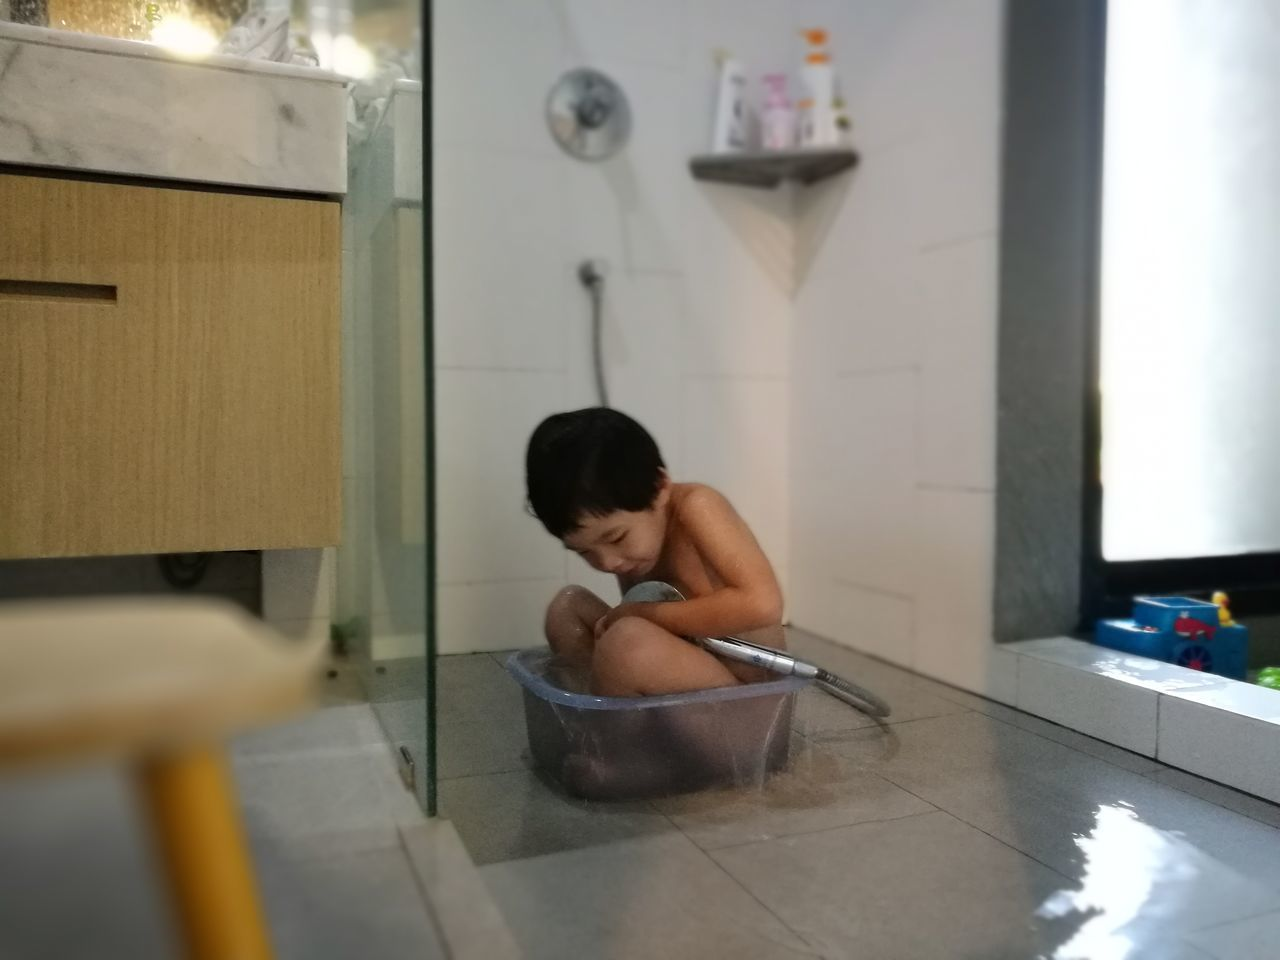 Indoors  Body Care Domestic Room Lifestyles One Person Hygiene Domestic Bathroom Adults Only Bathroom People Domestic Life Adult Only Men Day Kid Boy Play Water Bathing Bath